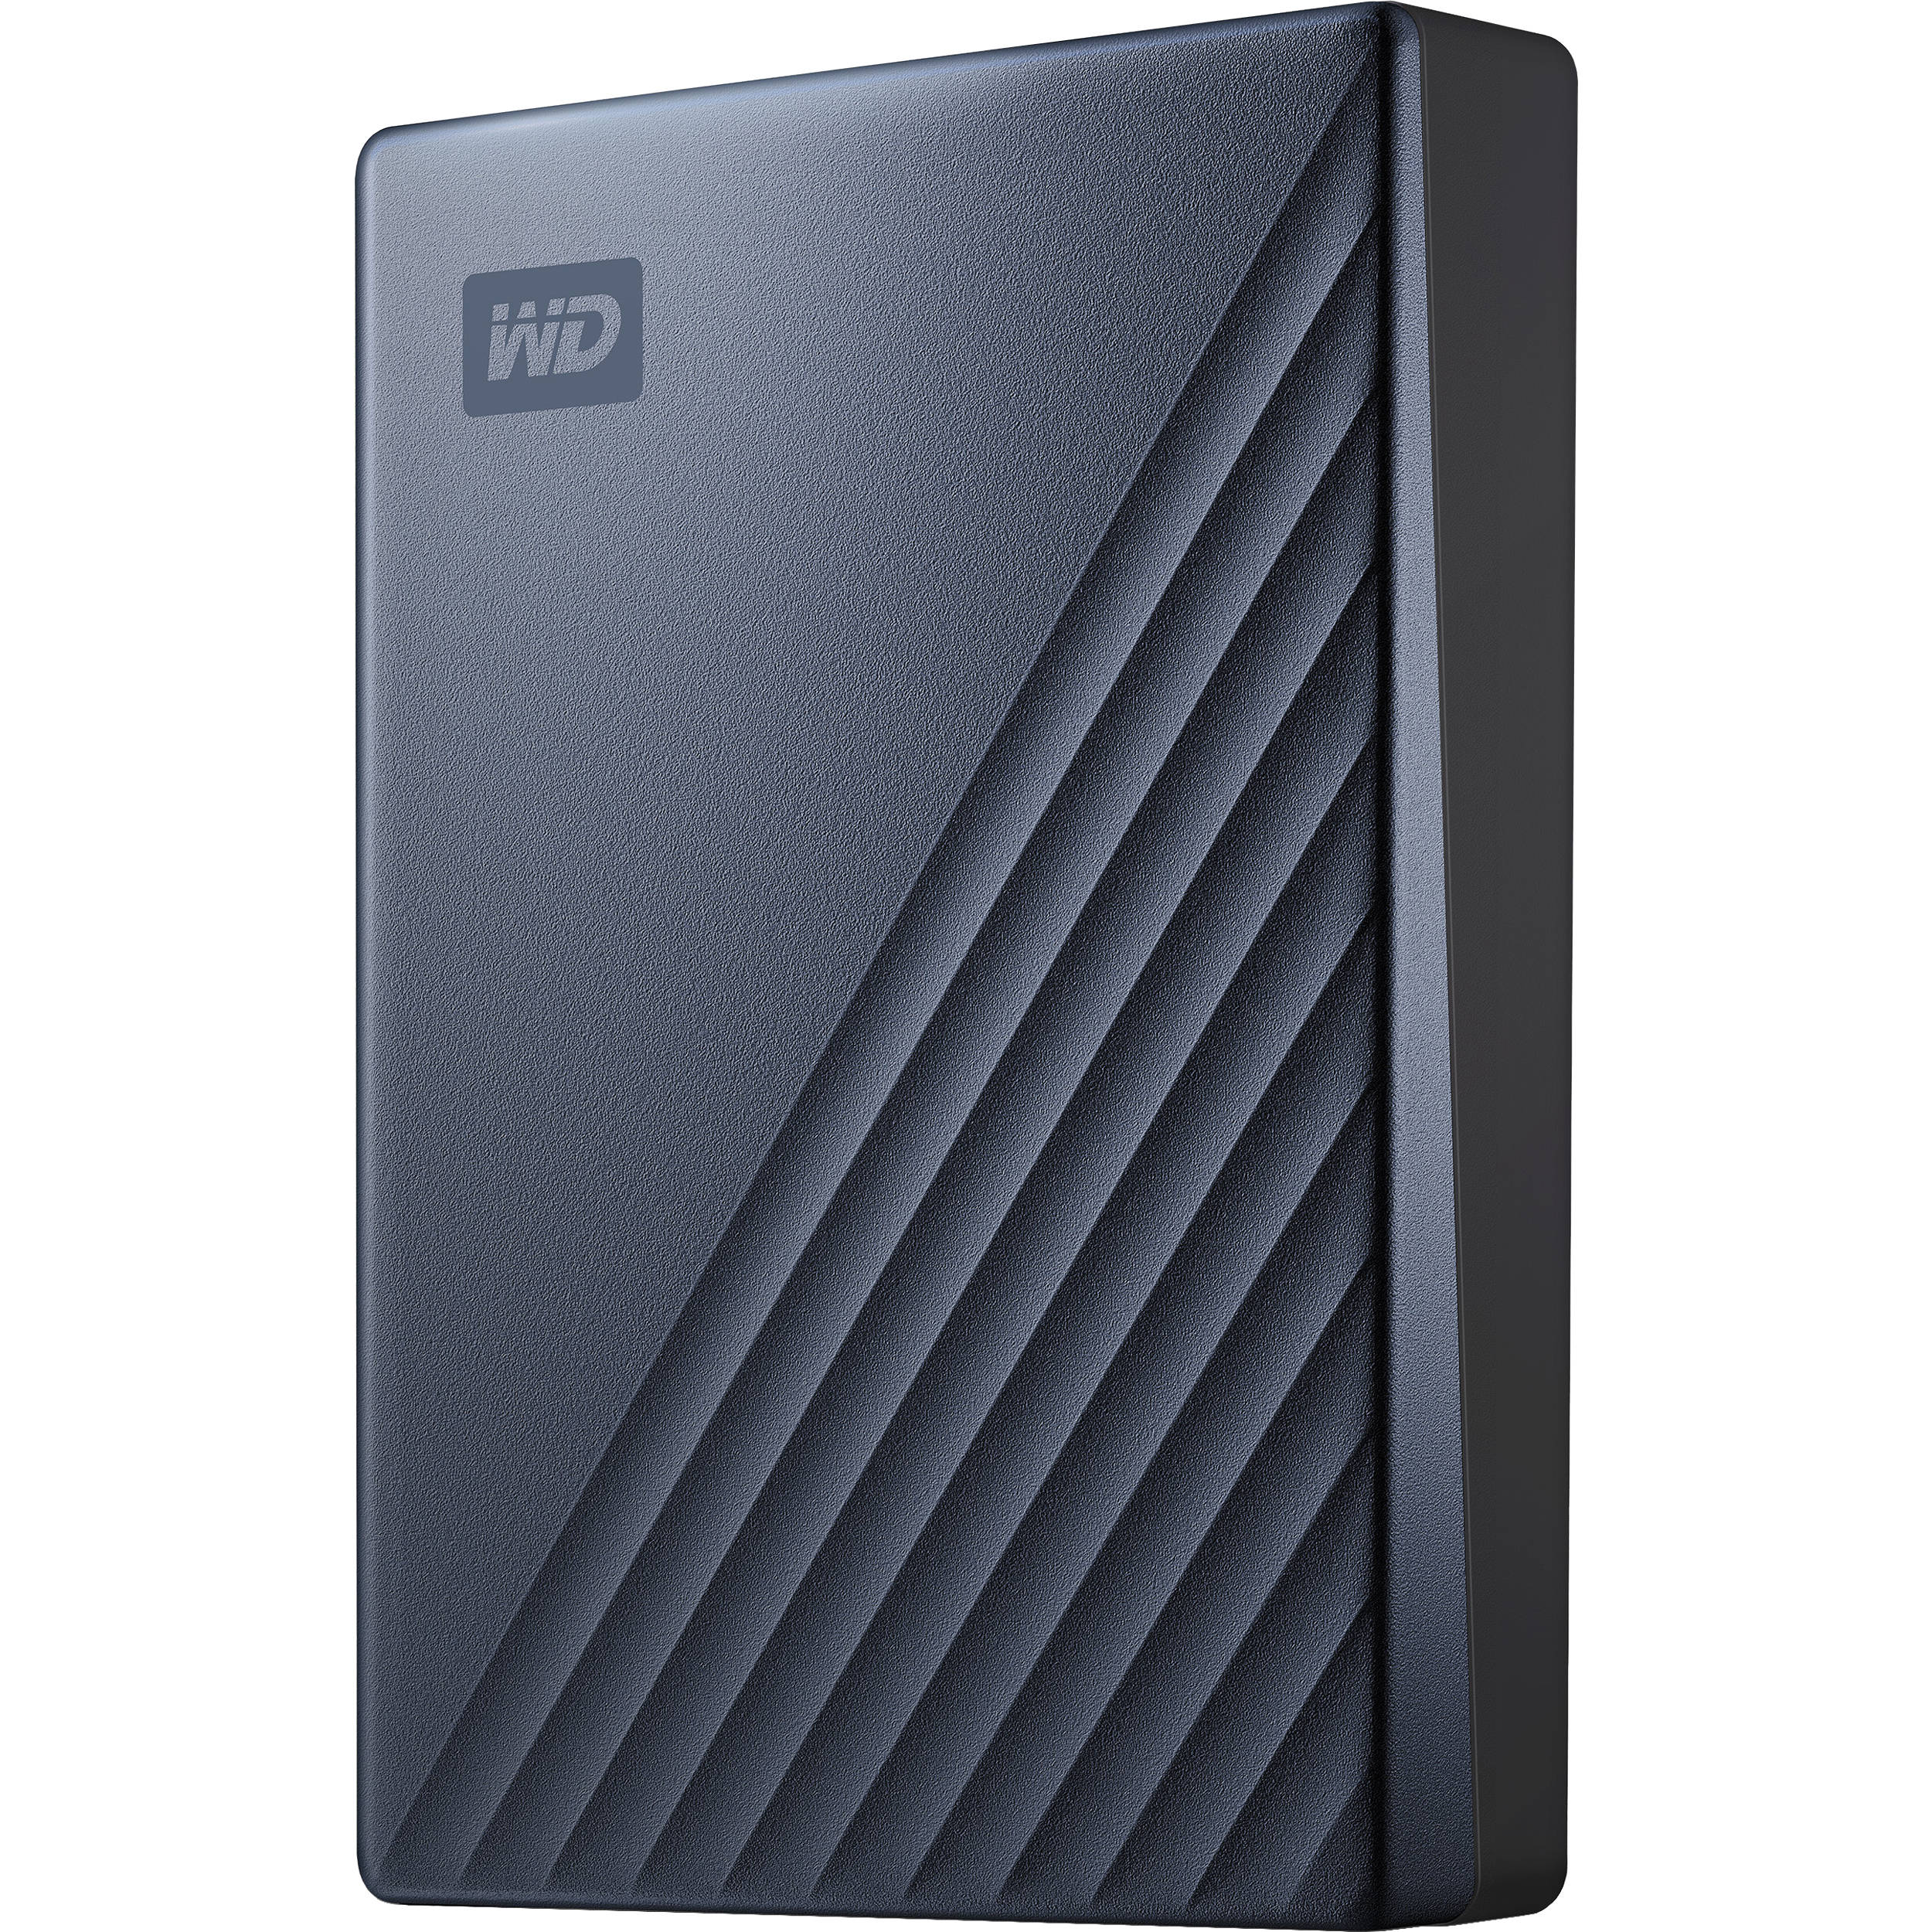 Image result for Western Digital My Passport 5TB